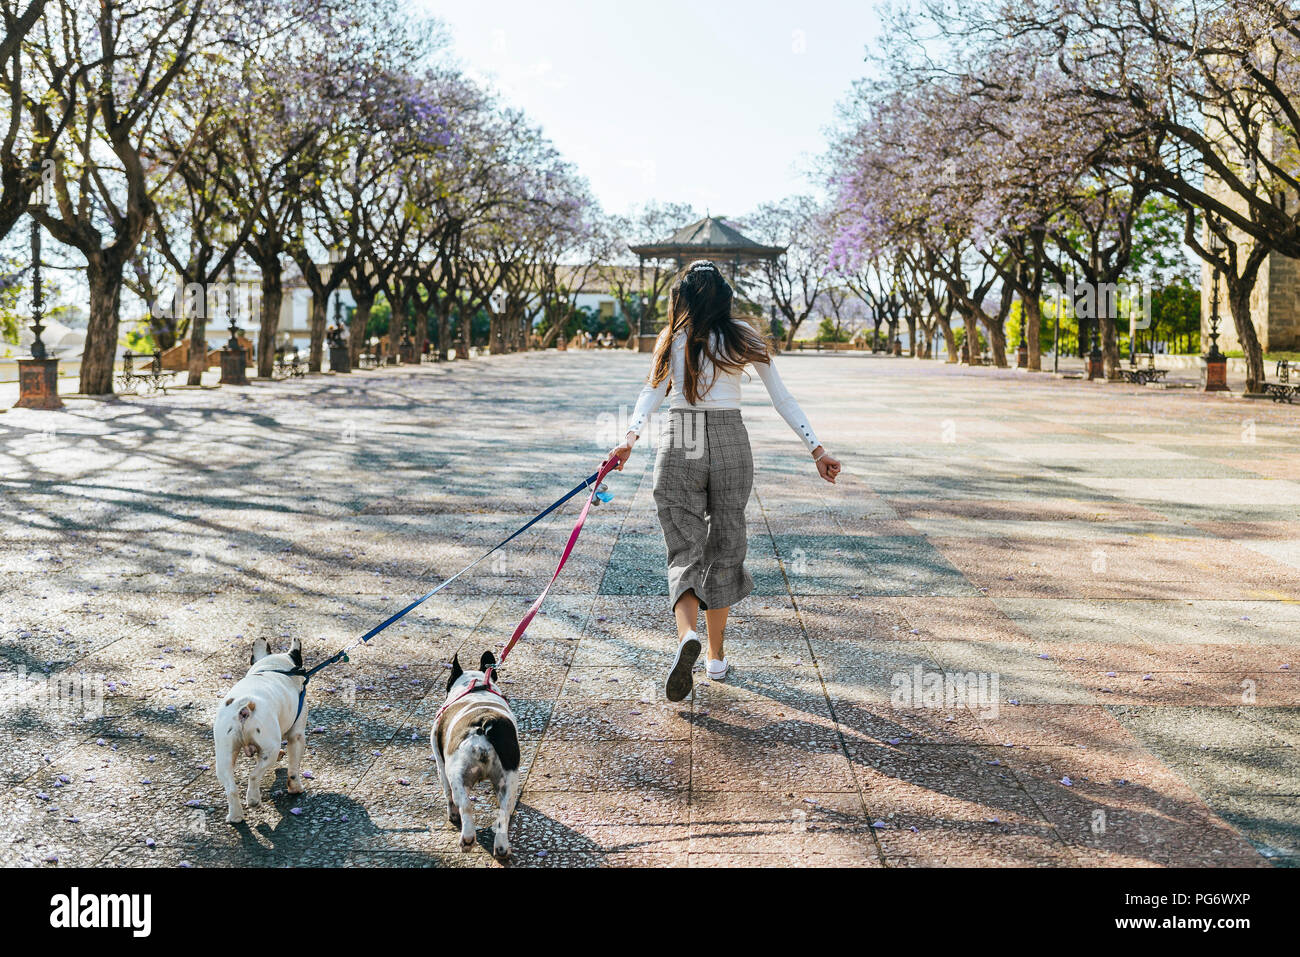 Spain, Andalusia, Jerez de la Frontera, Woman running with two dogs on square Stock Photo